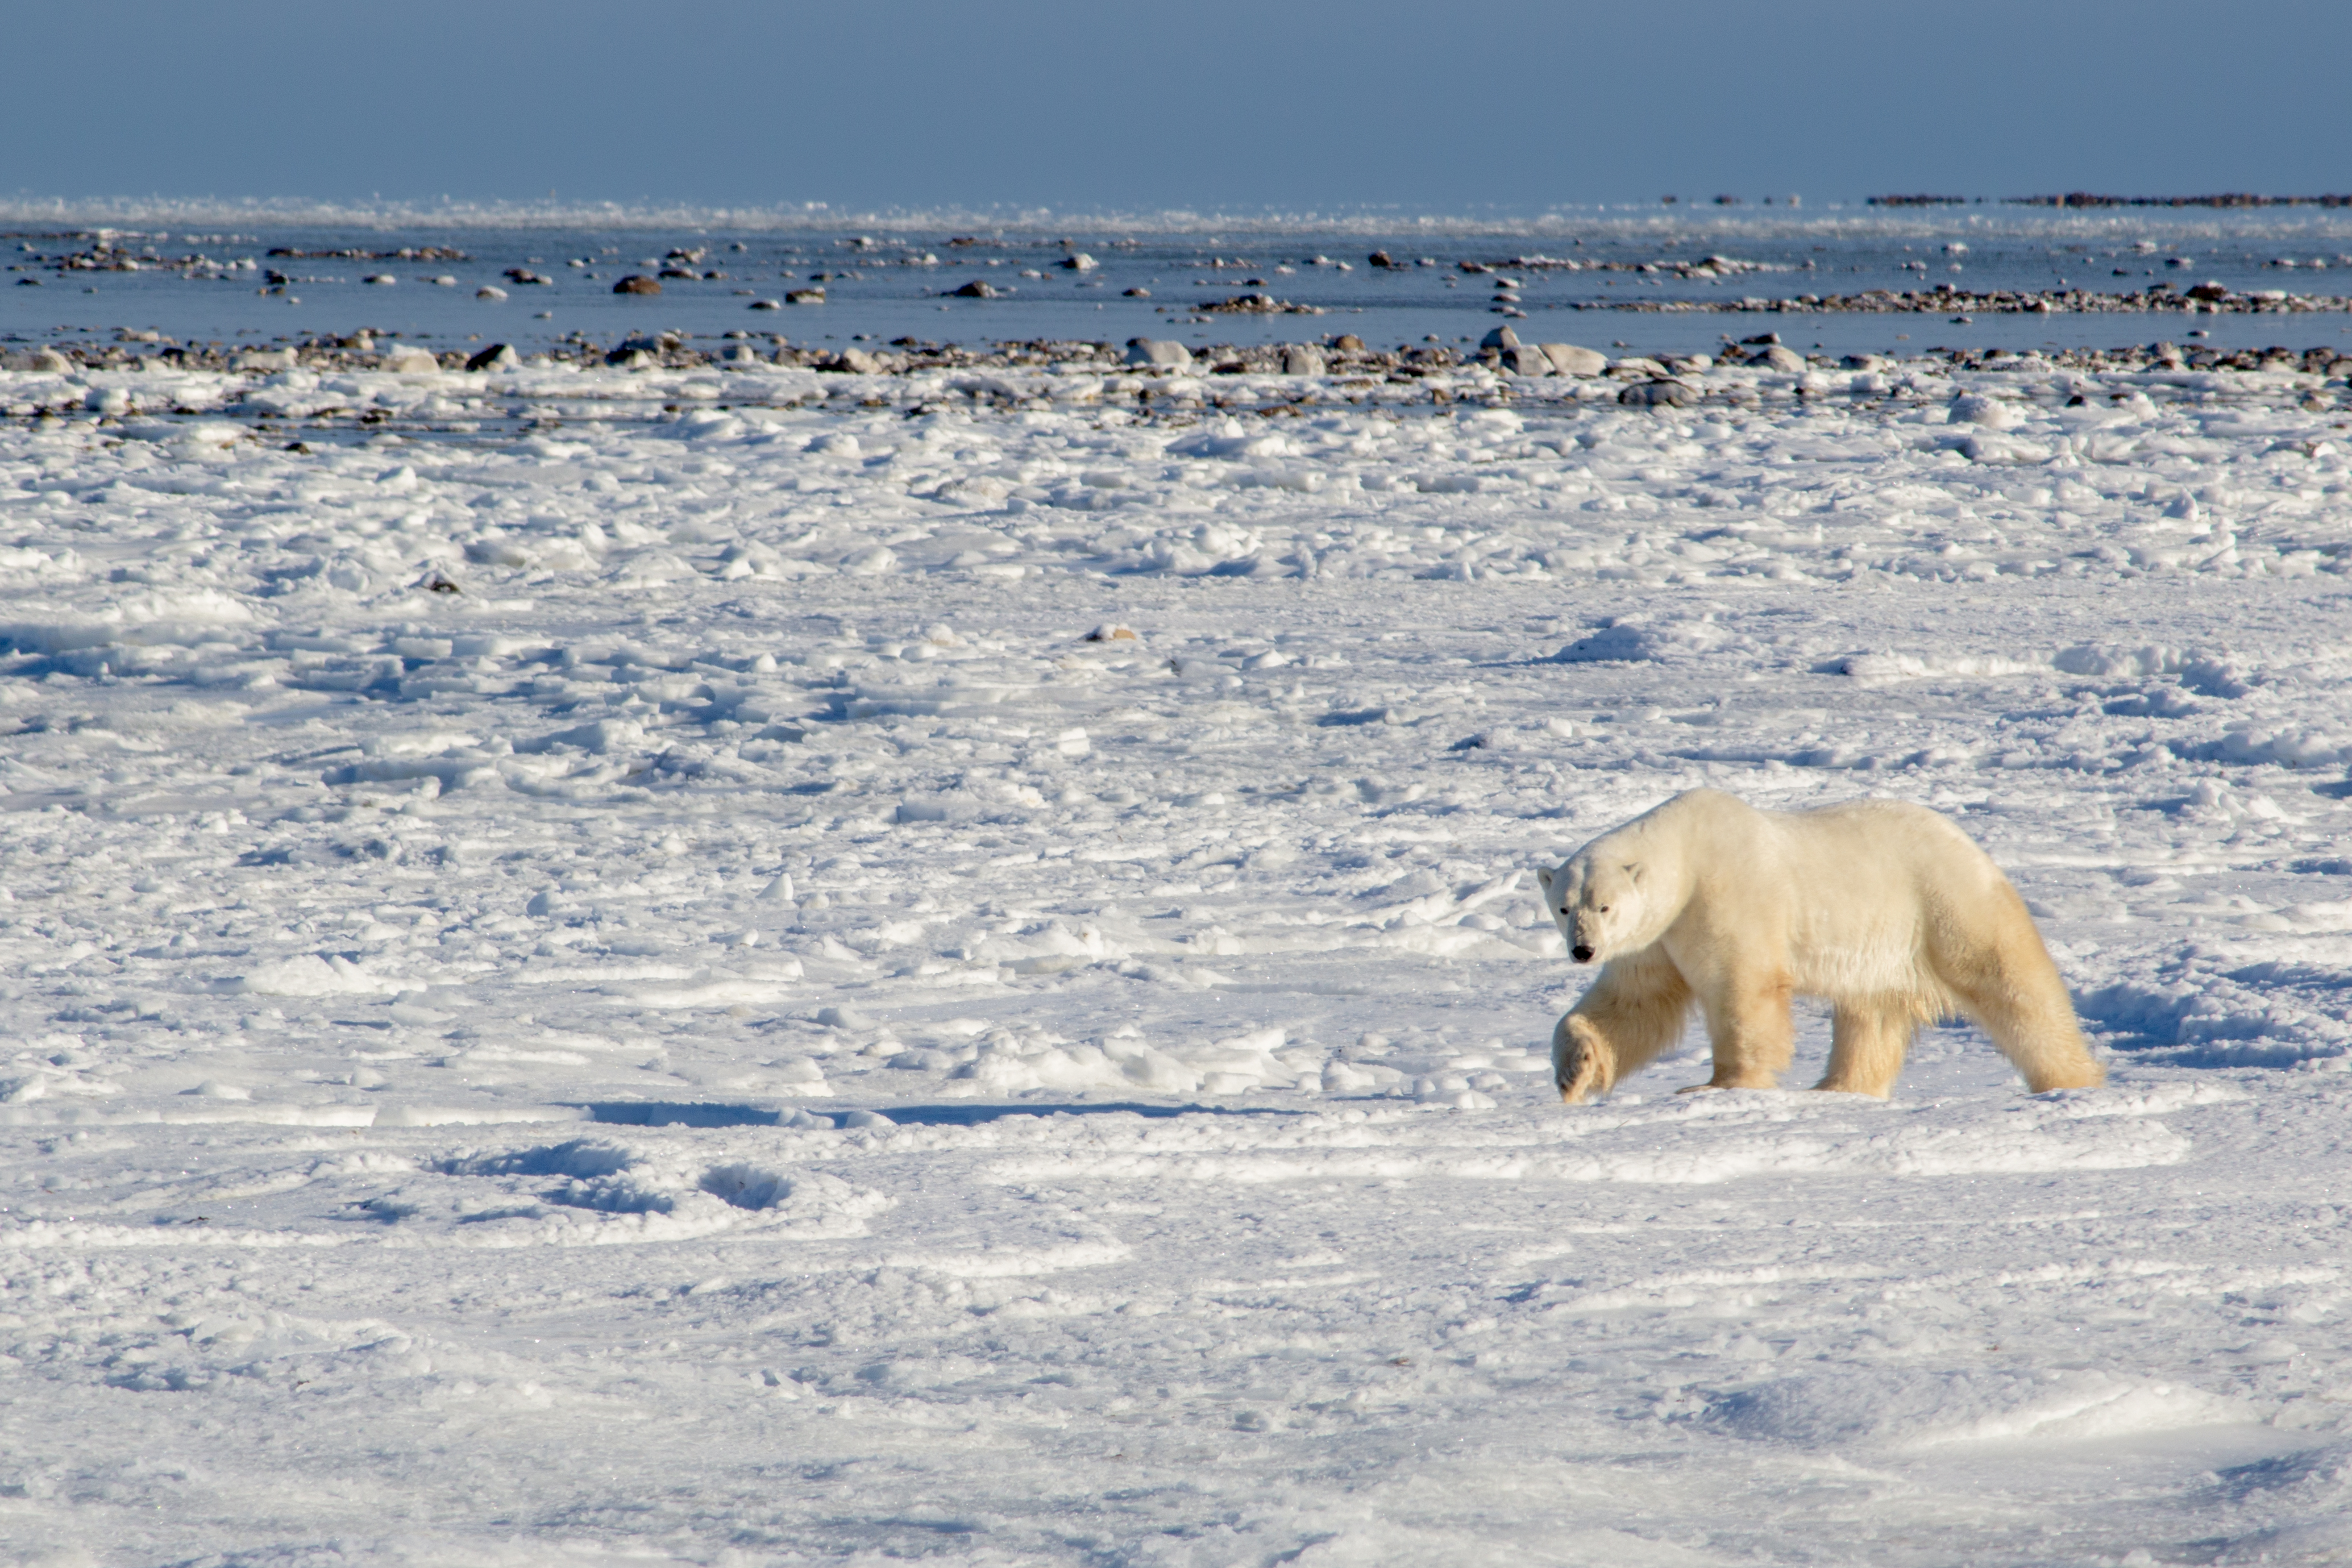 Wild Polar Bears in Churchill